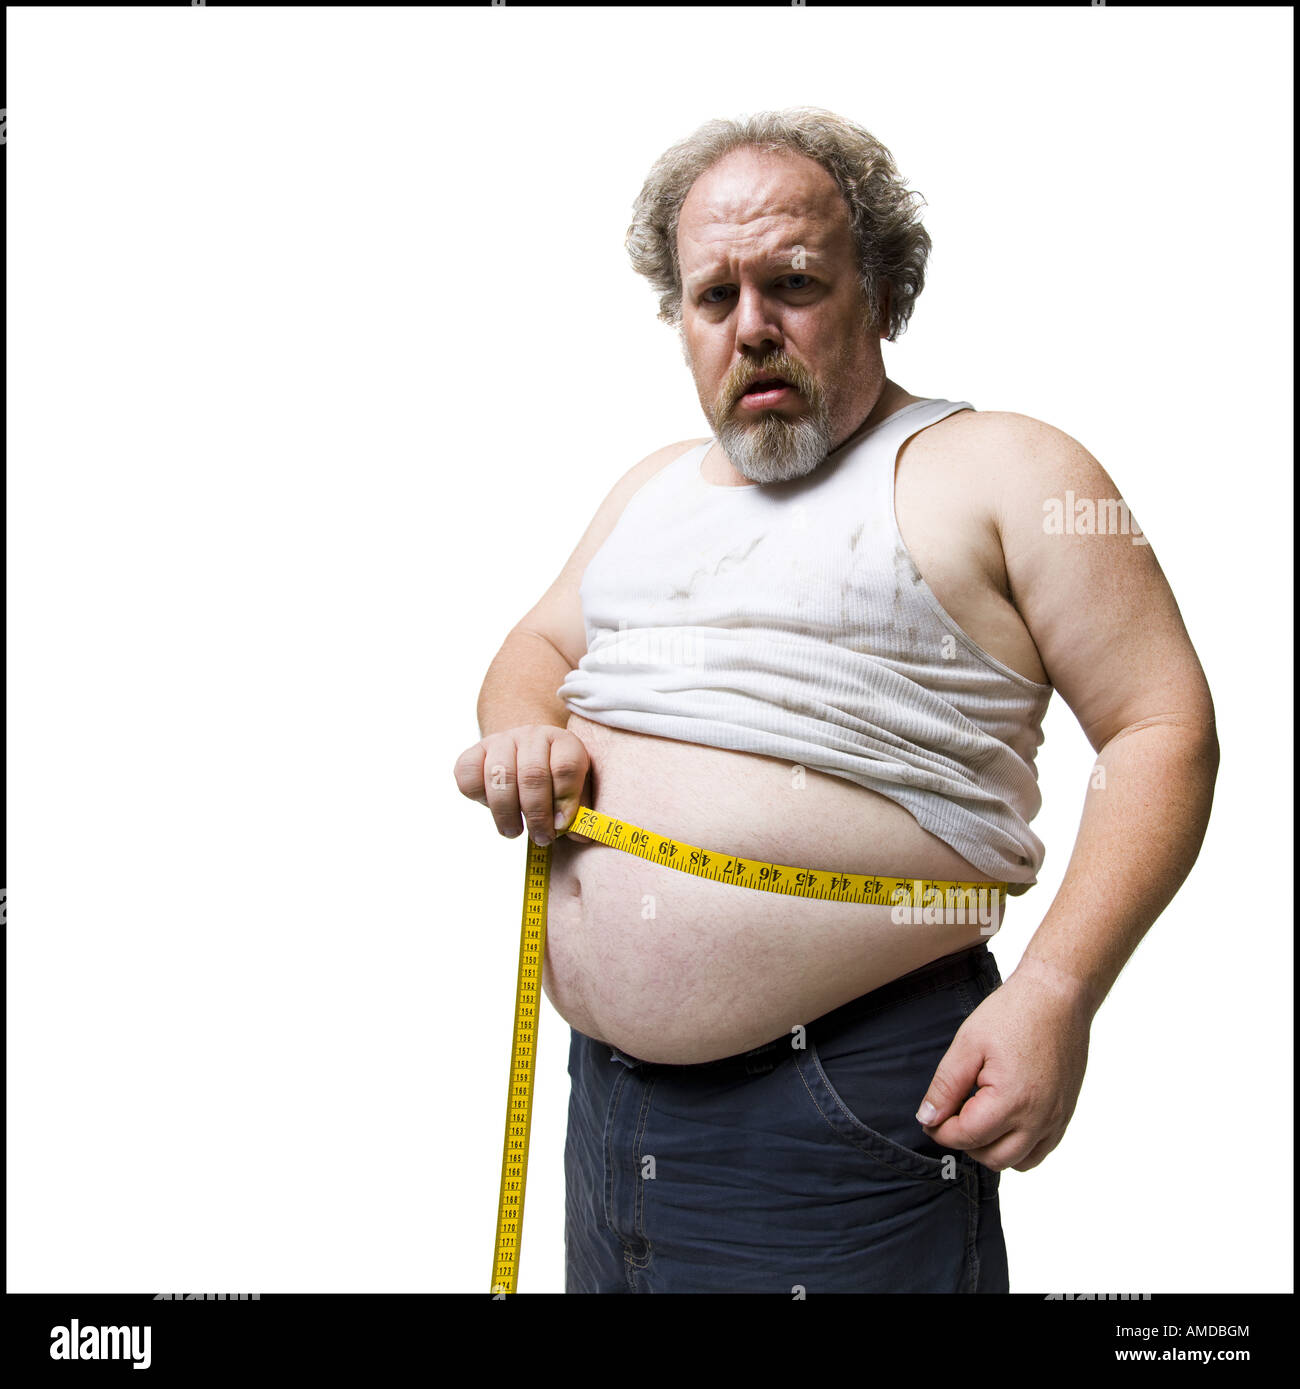 Obese man measuring waist with tape measure - Stock Image